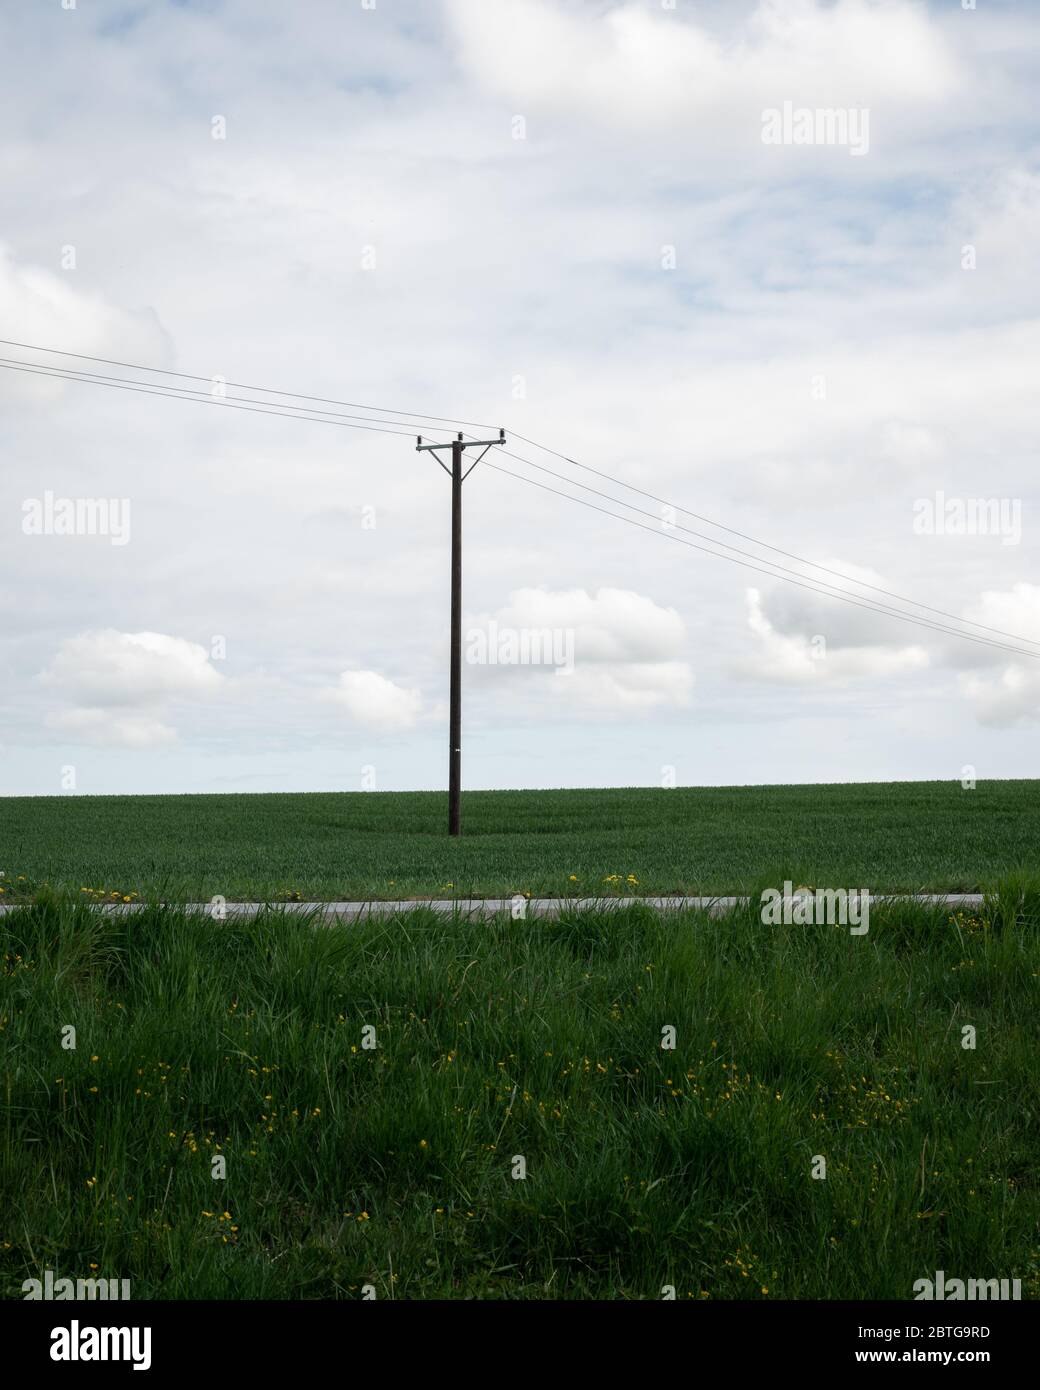 A single power line pole stands tall above the green fields in the southern Sweden landscape called Skåne Stock Photo